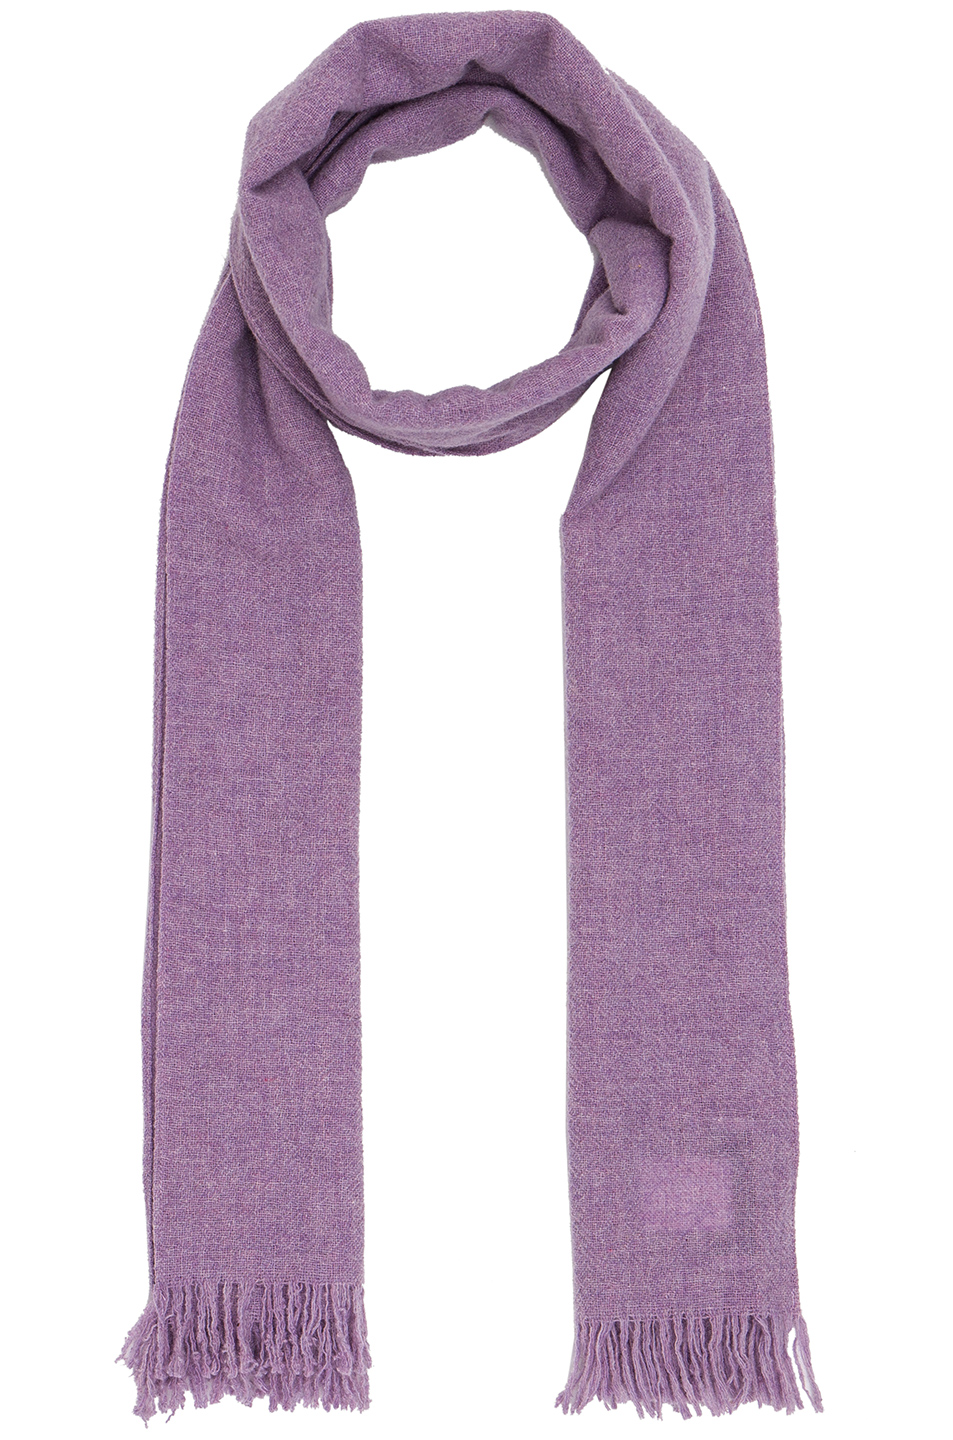 Our Legacy Wool Scarf in Purple